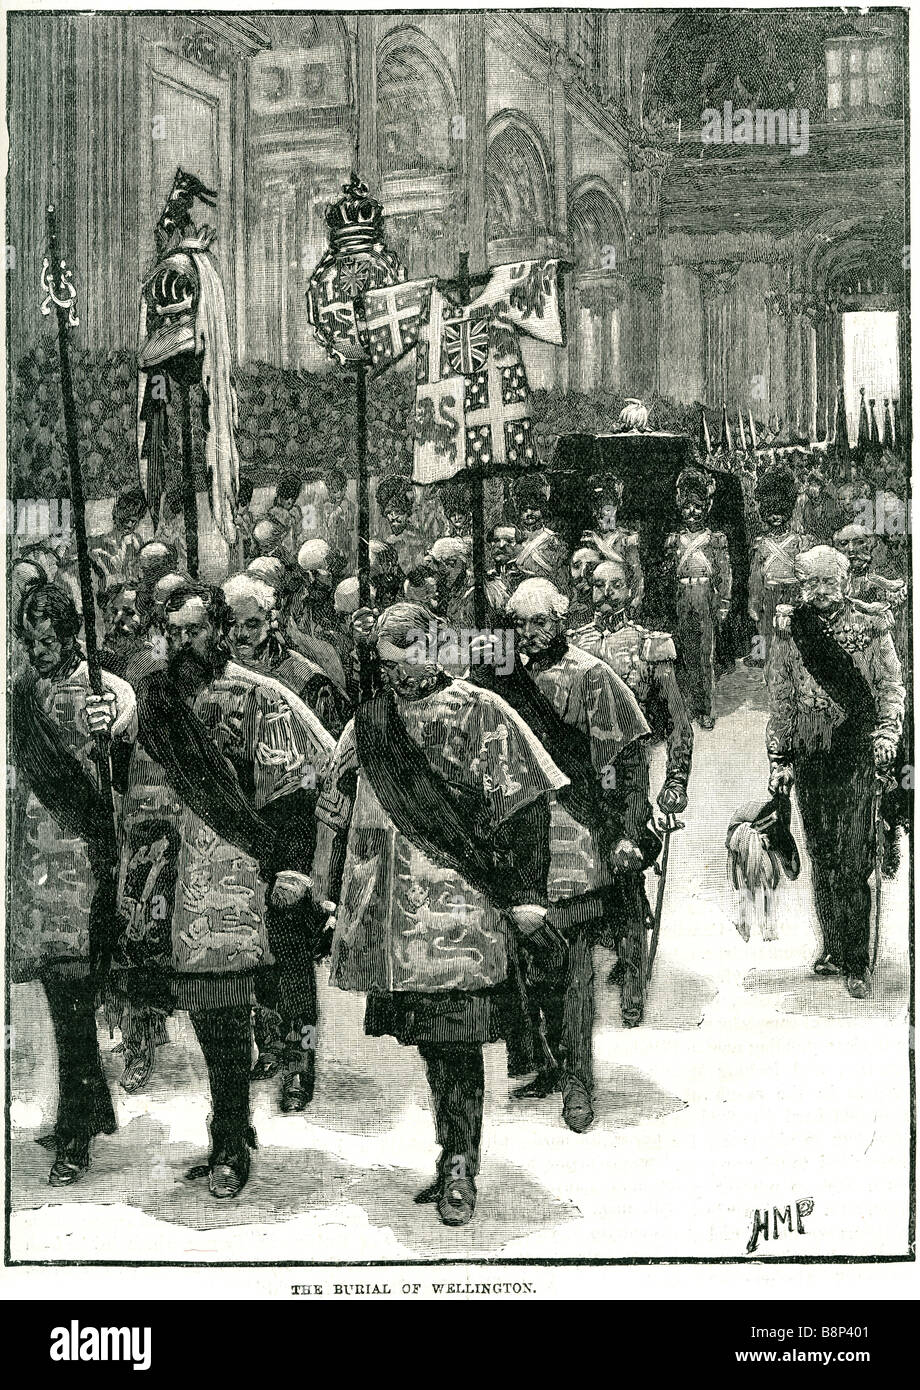 burial of wellington 1852 Walmer Castle political Commander-in-Chief state funeral - Stock Image